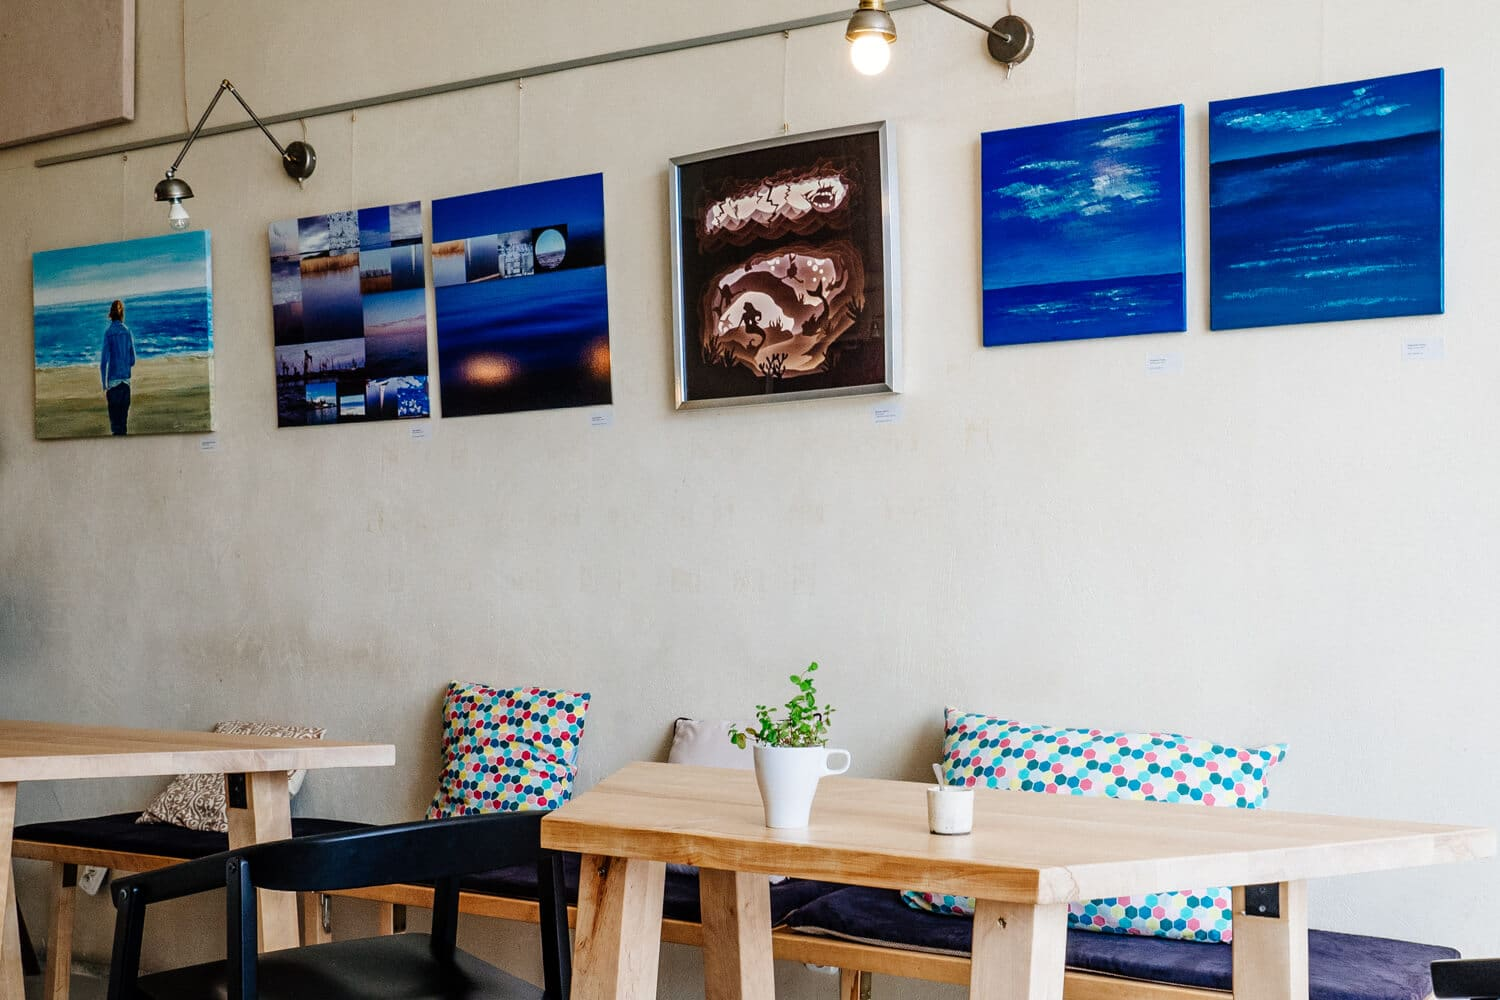 Kafle Specialty Coffee and Vegan Food